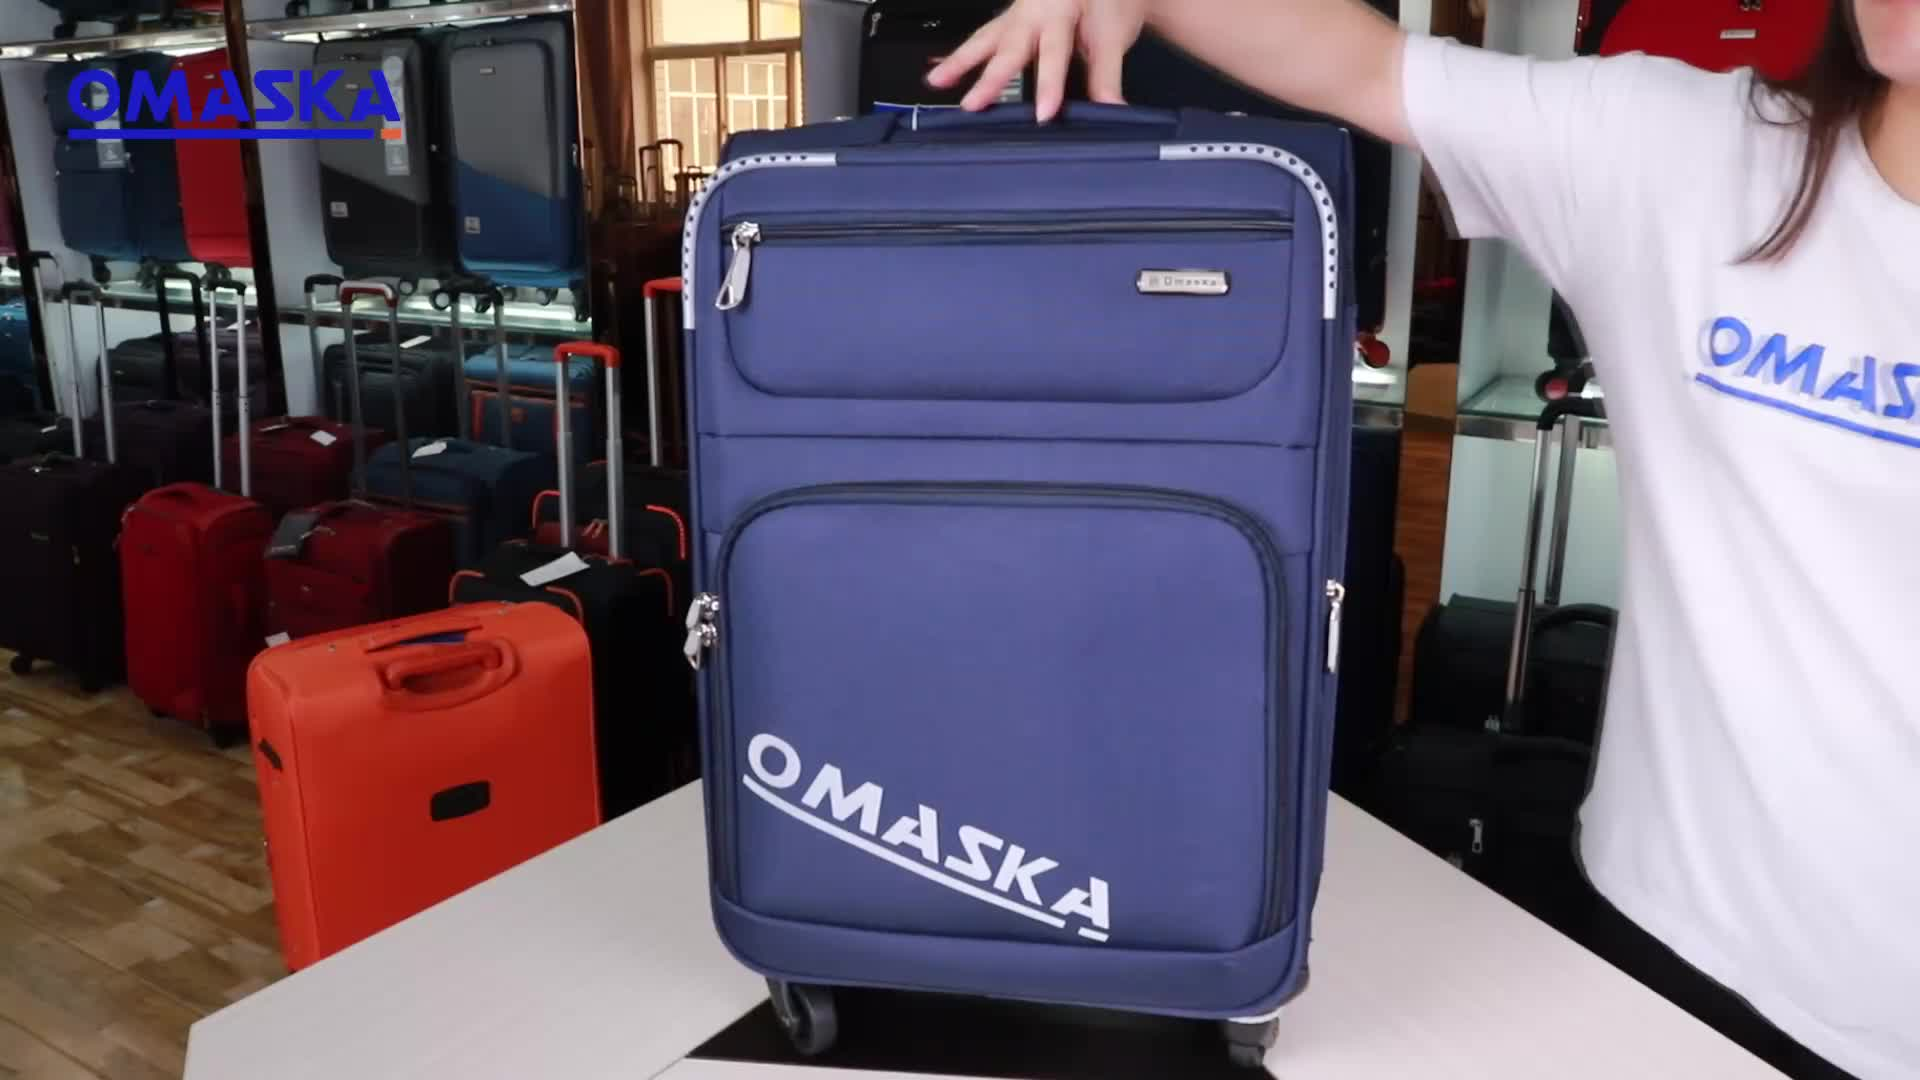 OMASKA suitcase luggage 20 years factory wholesale OEM ODM OBM custom 12 pcs removable wheel trolley travel luggage set